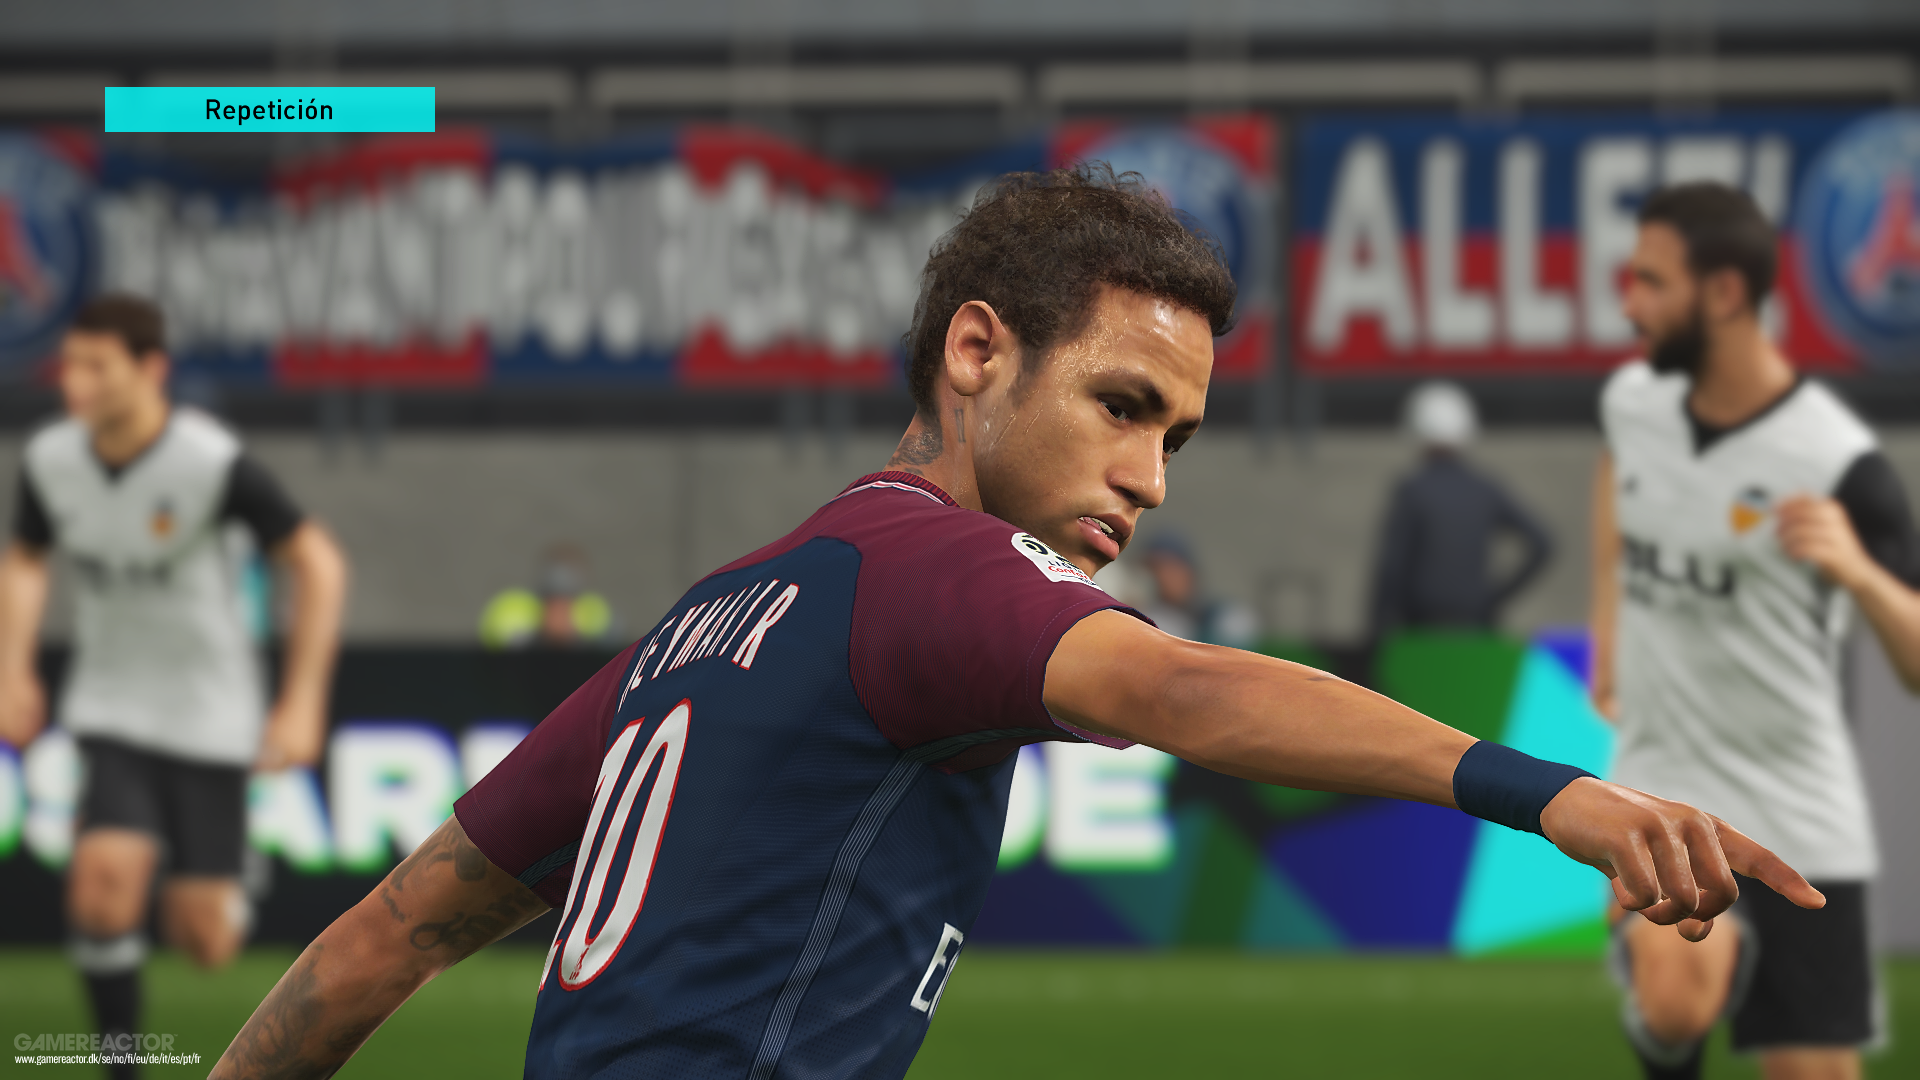 PES 2018 Gameplay Patch improves player cursor, AI, and more